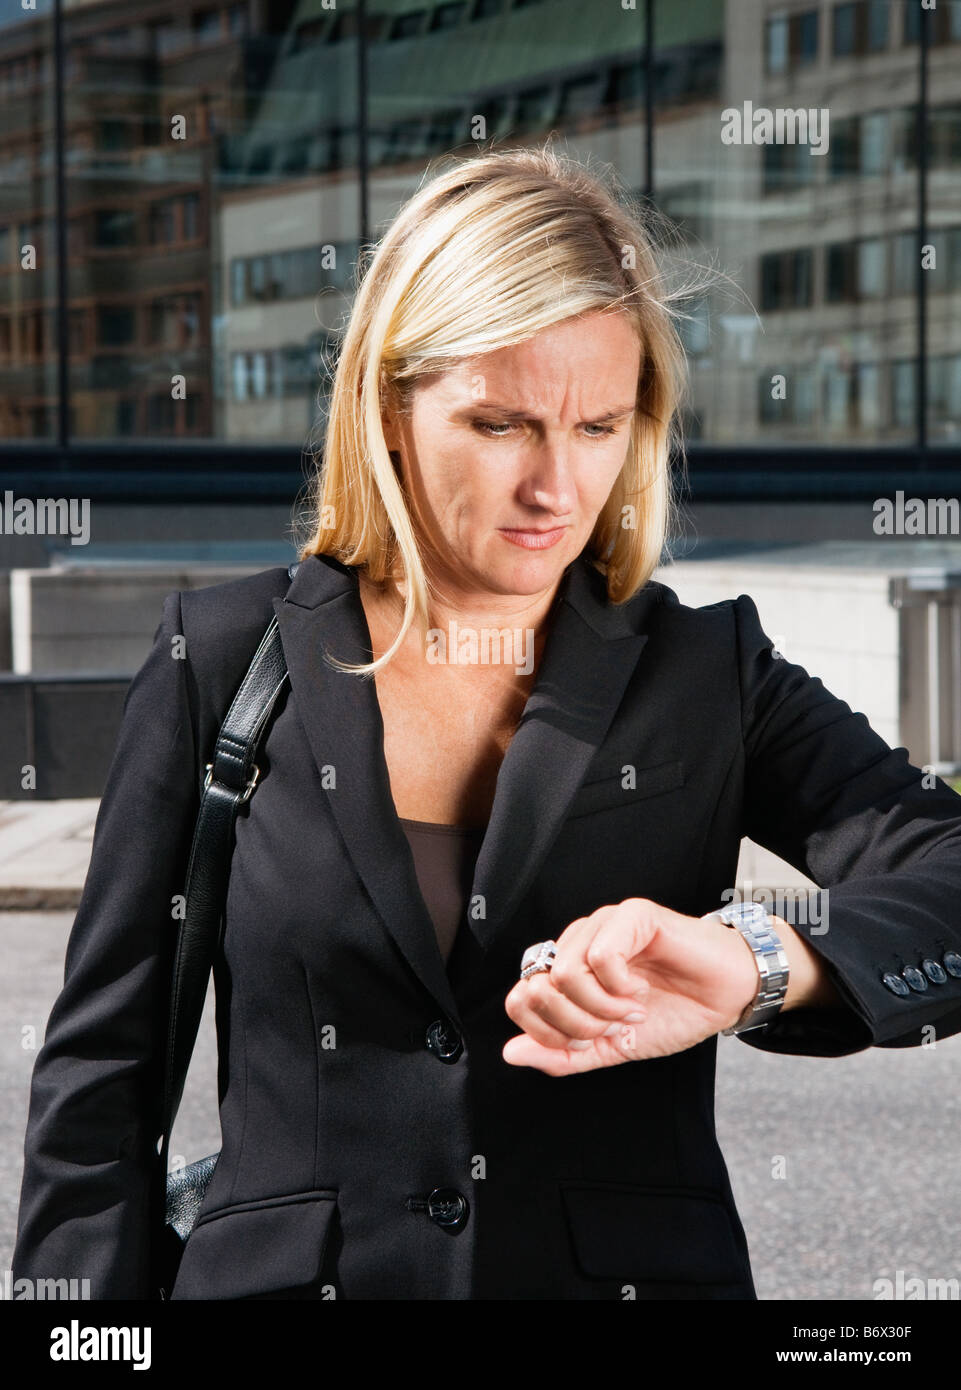 Businesswoman looks at her watch - Stock Image